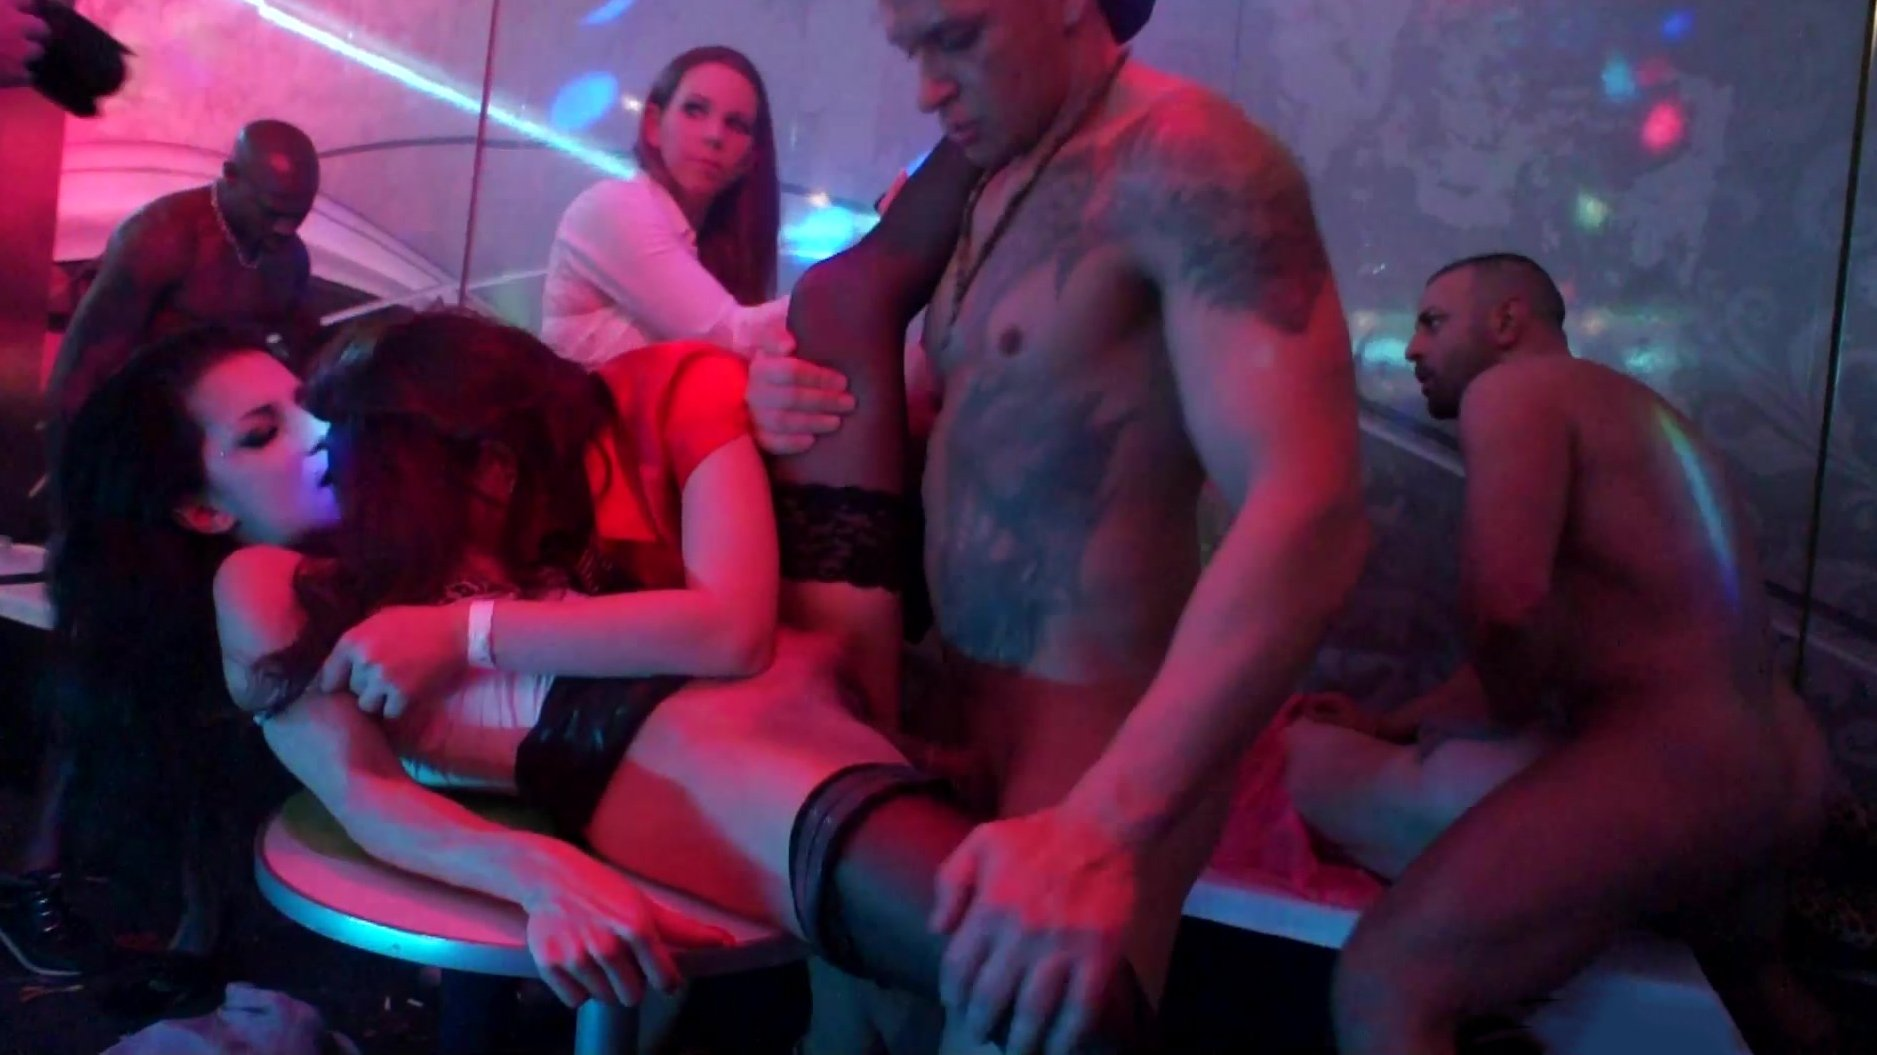 party sex videos massage 24 7